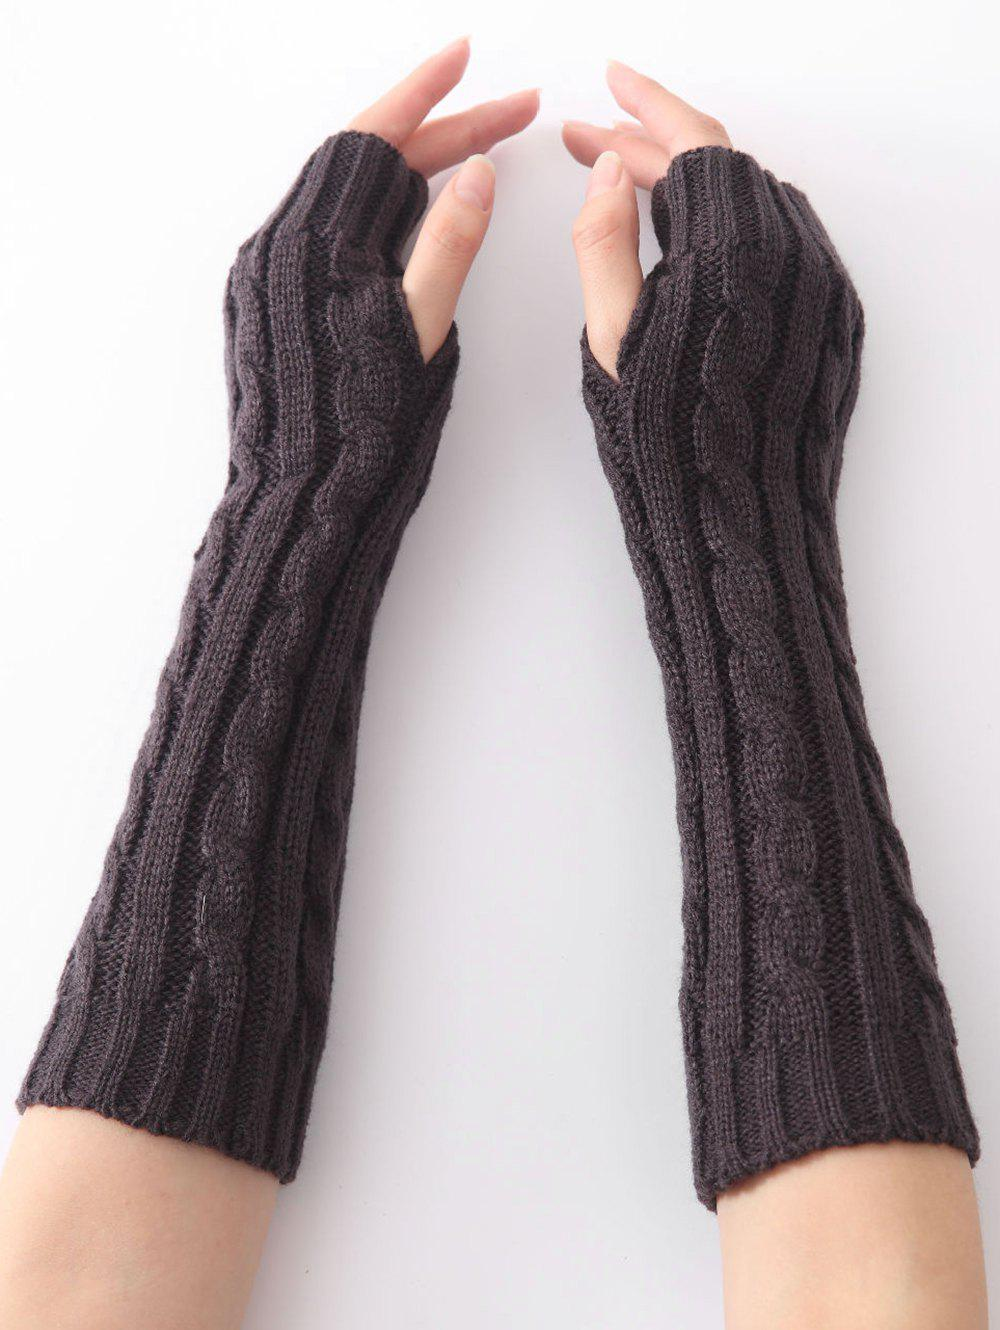 Vintage Infinity Crochet Knitted Arm Warmers